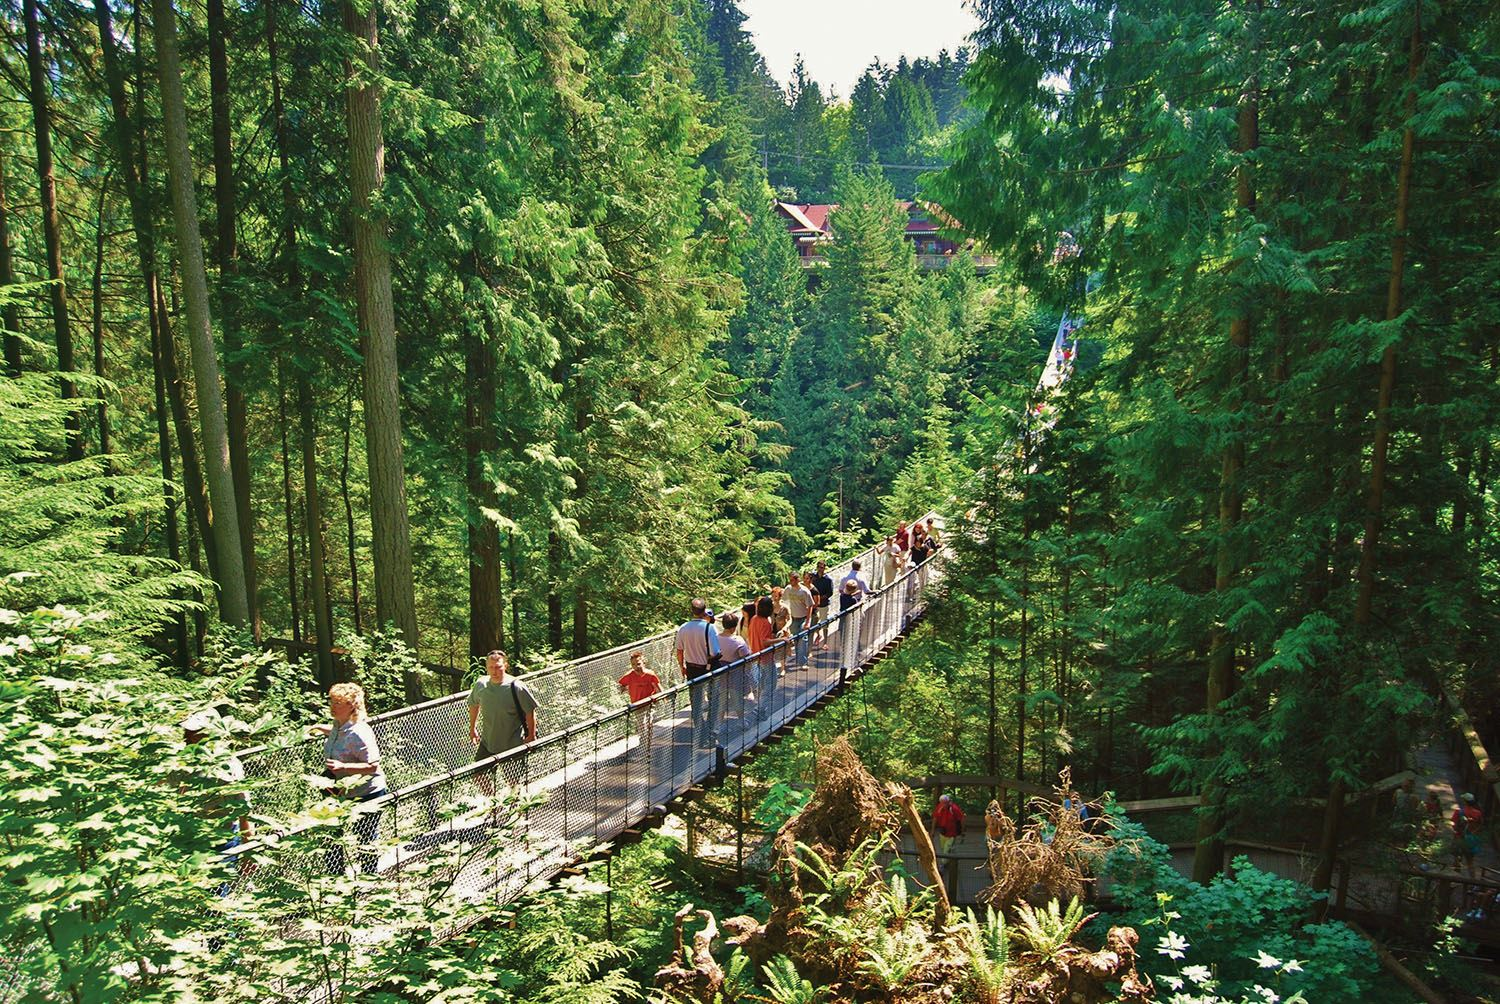 Canada capilano suspension bridge vancouver 01